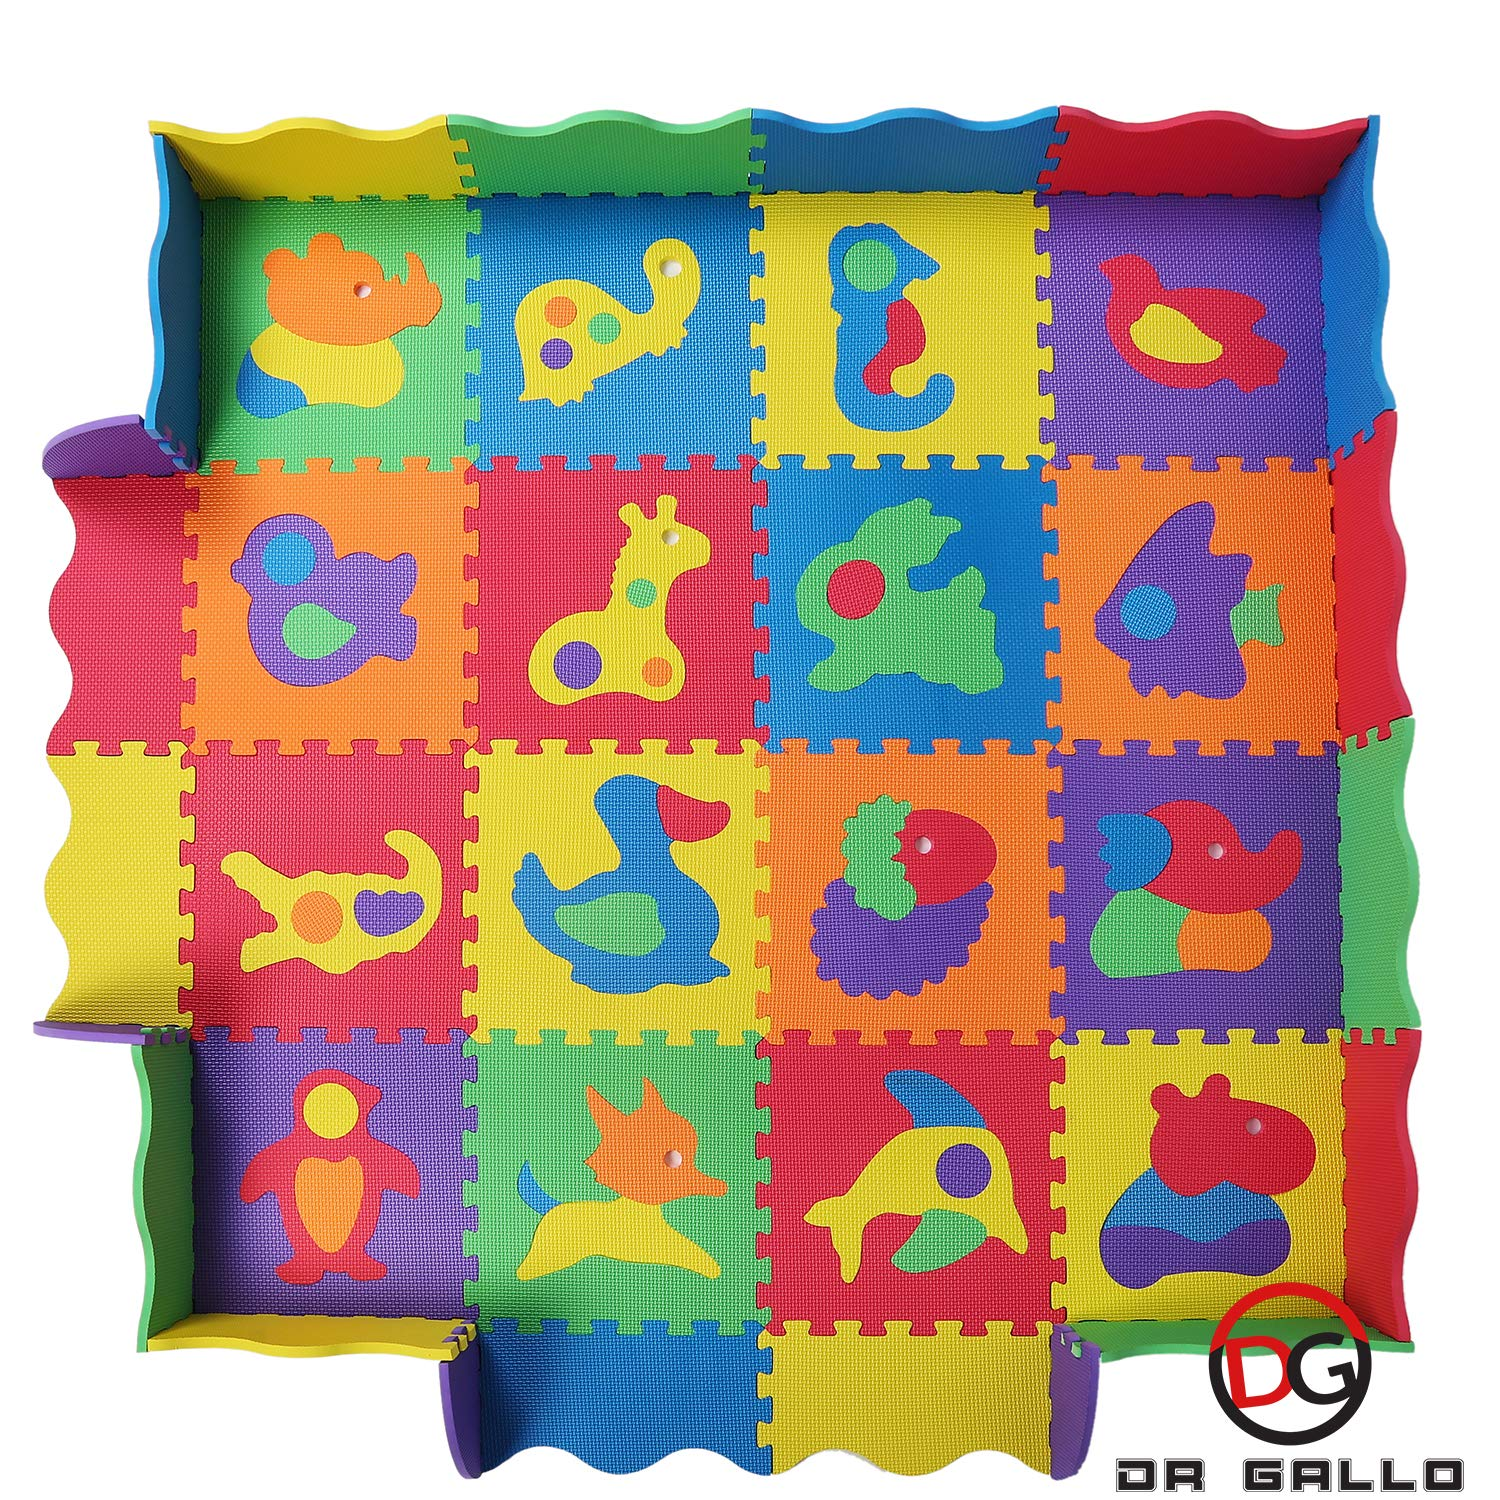 Baby Play Mat with Fence - 36 Colorful Animal Puzzles - Interlocking Safety Foam Tiles - 57x57 Inches for Crawling, Floor Play, Tummy Time dr-gallo